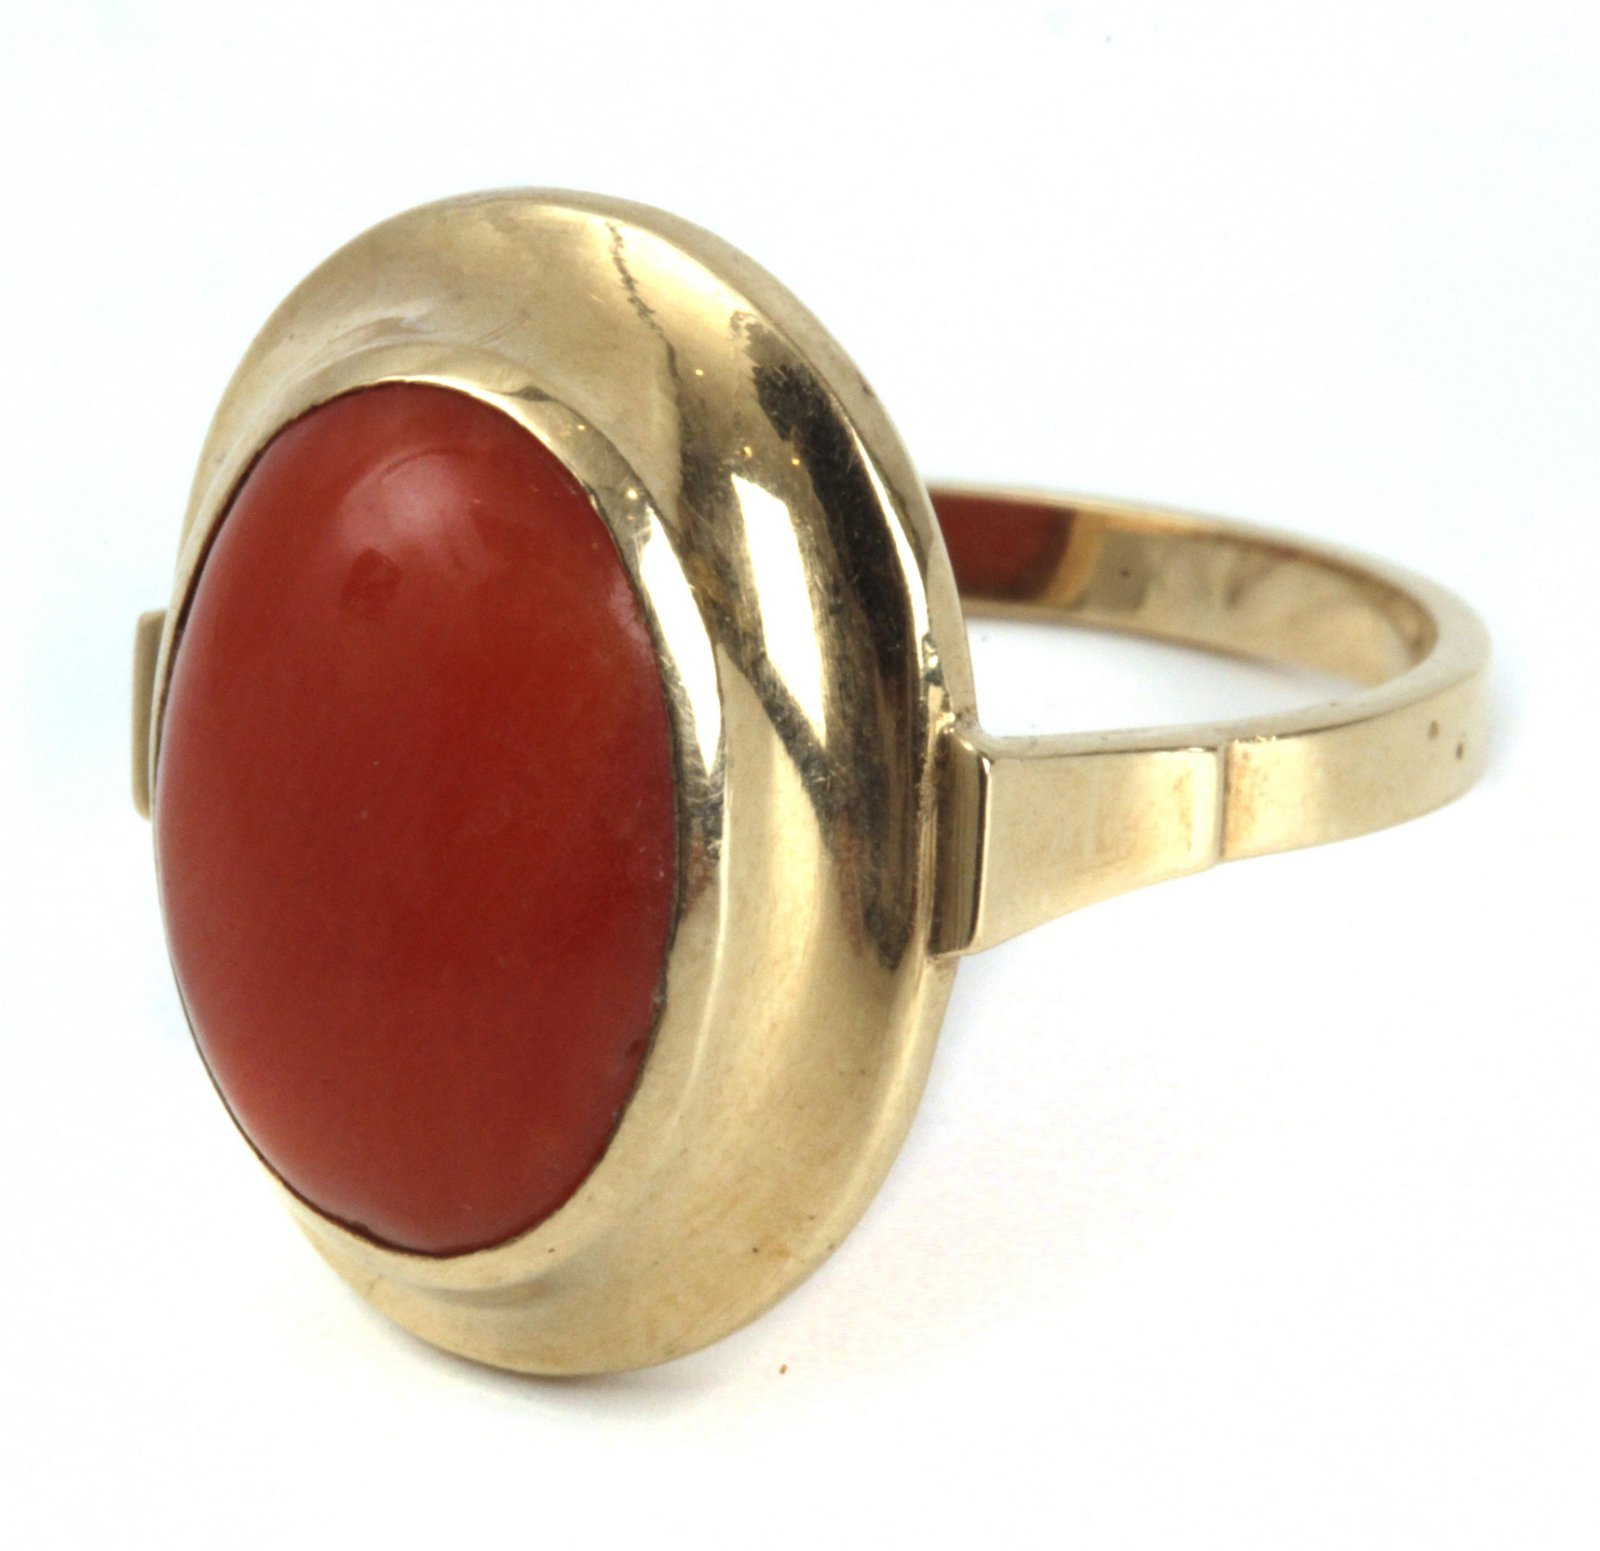 A ring circa 1950 with an 18k. yellow gold setting with